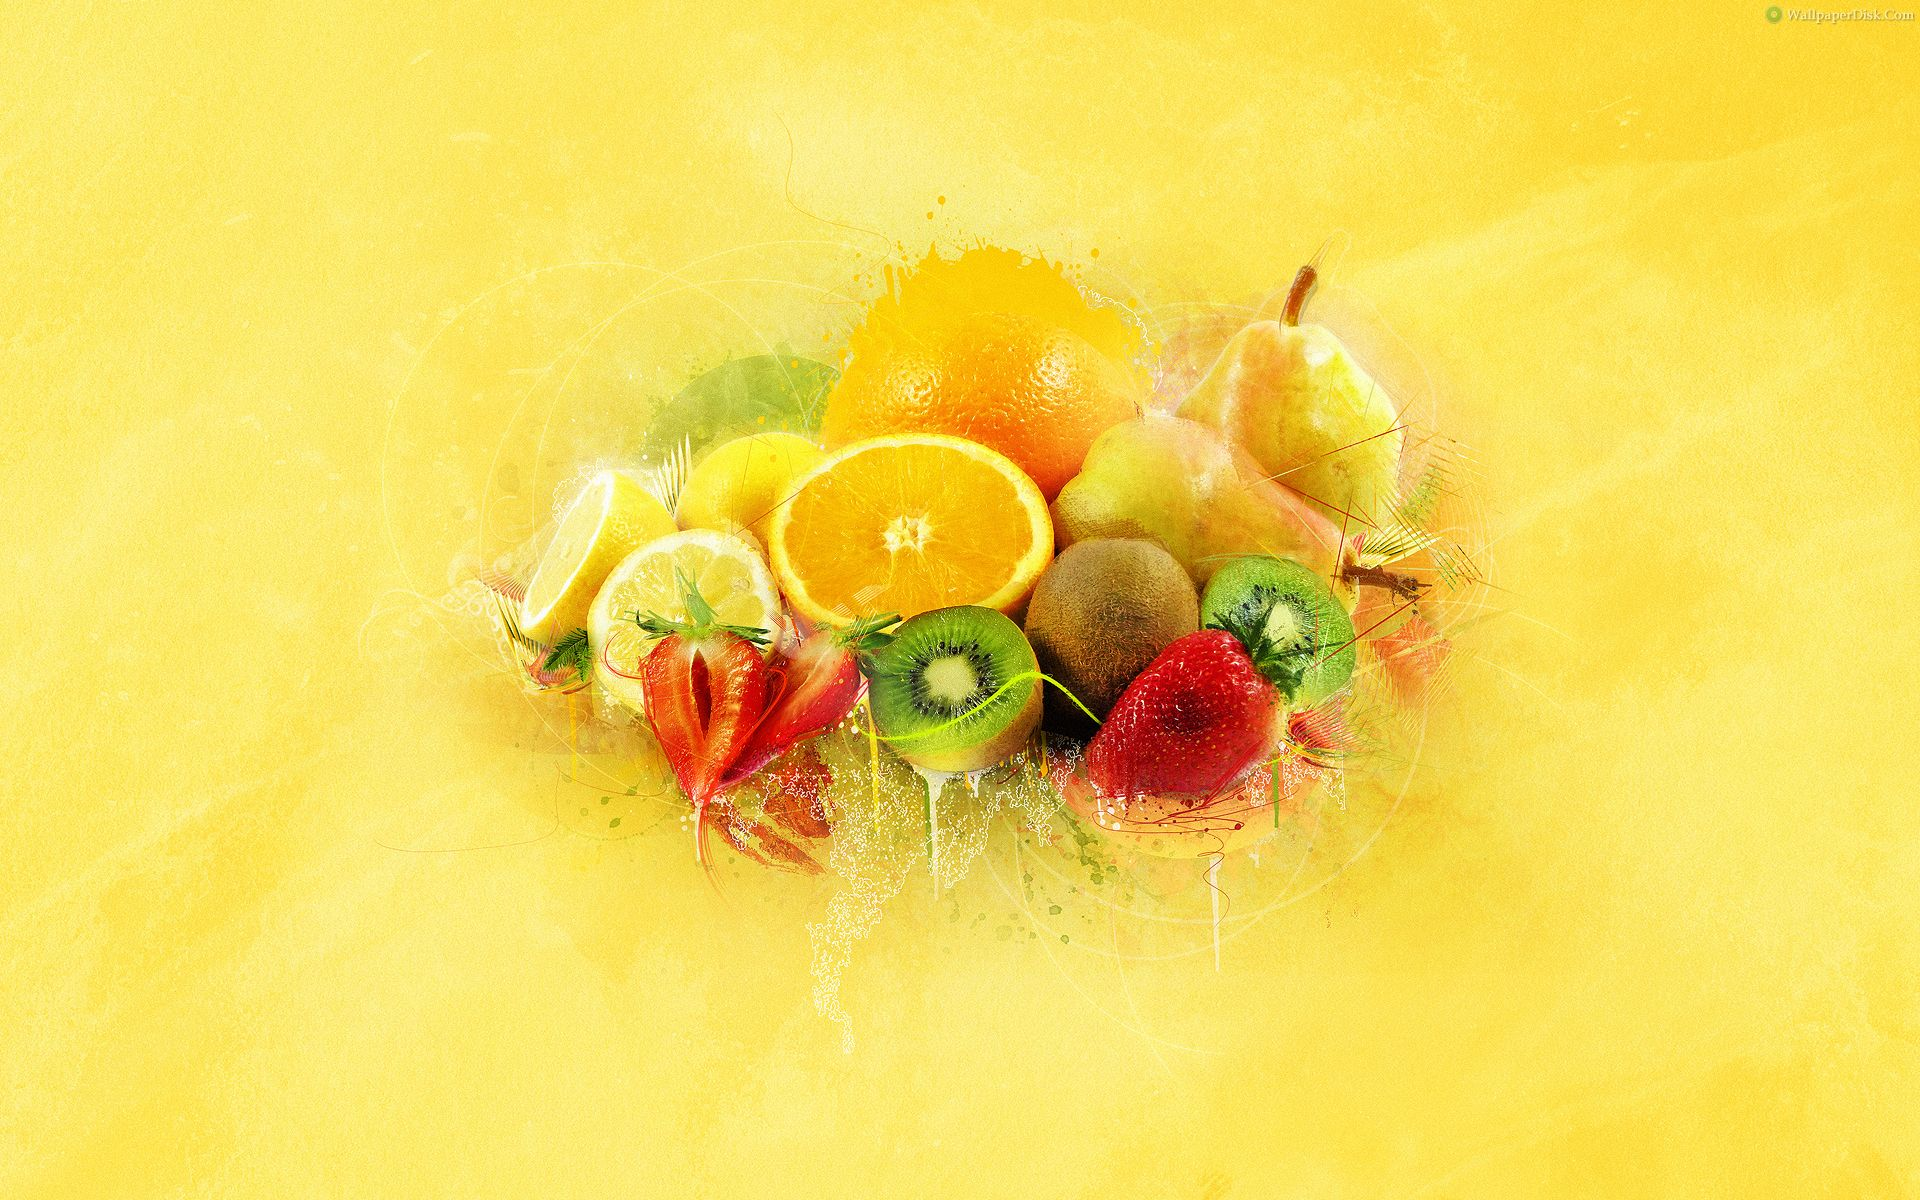 Fruit wallpaper 173592 1920x1200